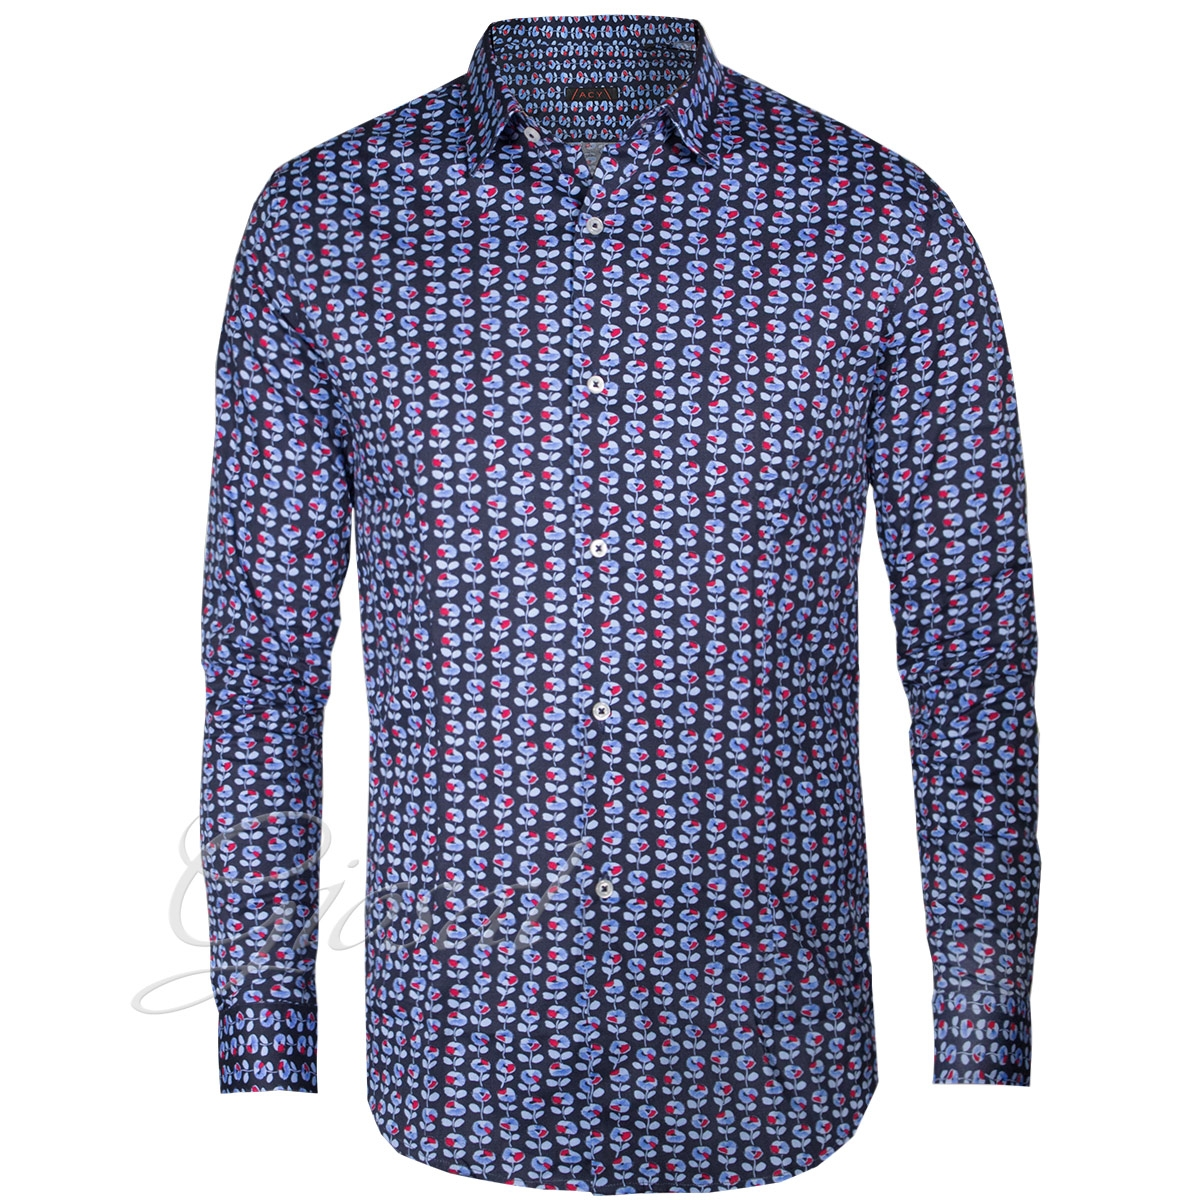 Uomo Taglia M//L//XL//XXL//3XL Gladiolus Casual Camicia Slim Fit Colletto Button-Down//Camicia Classiche